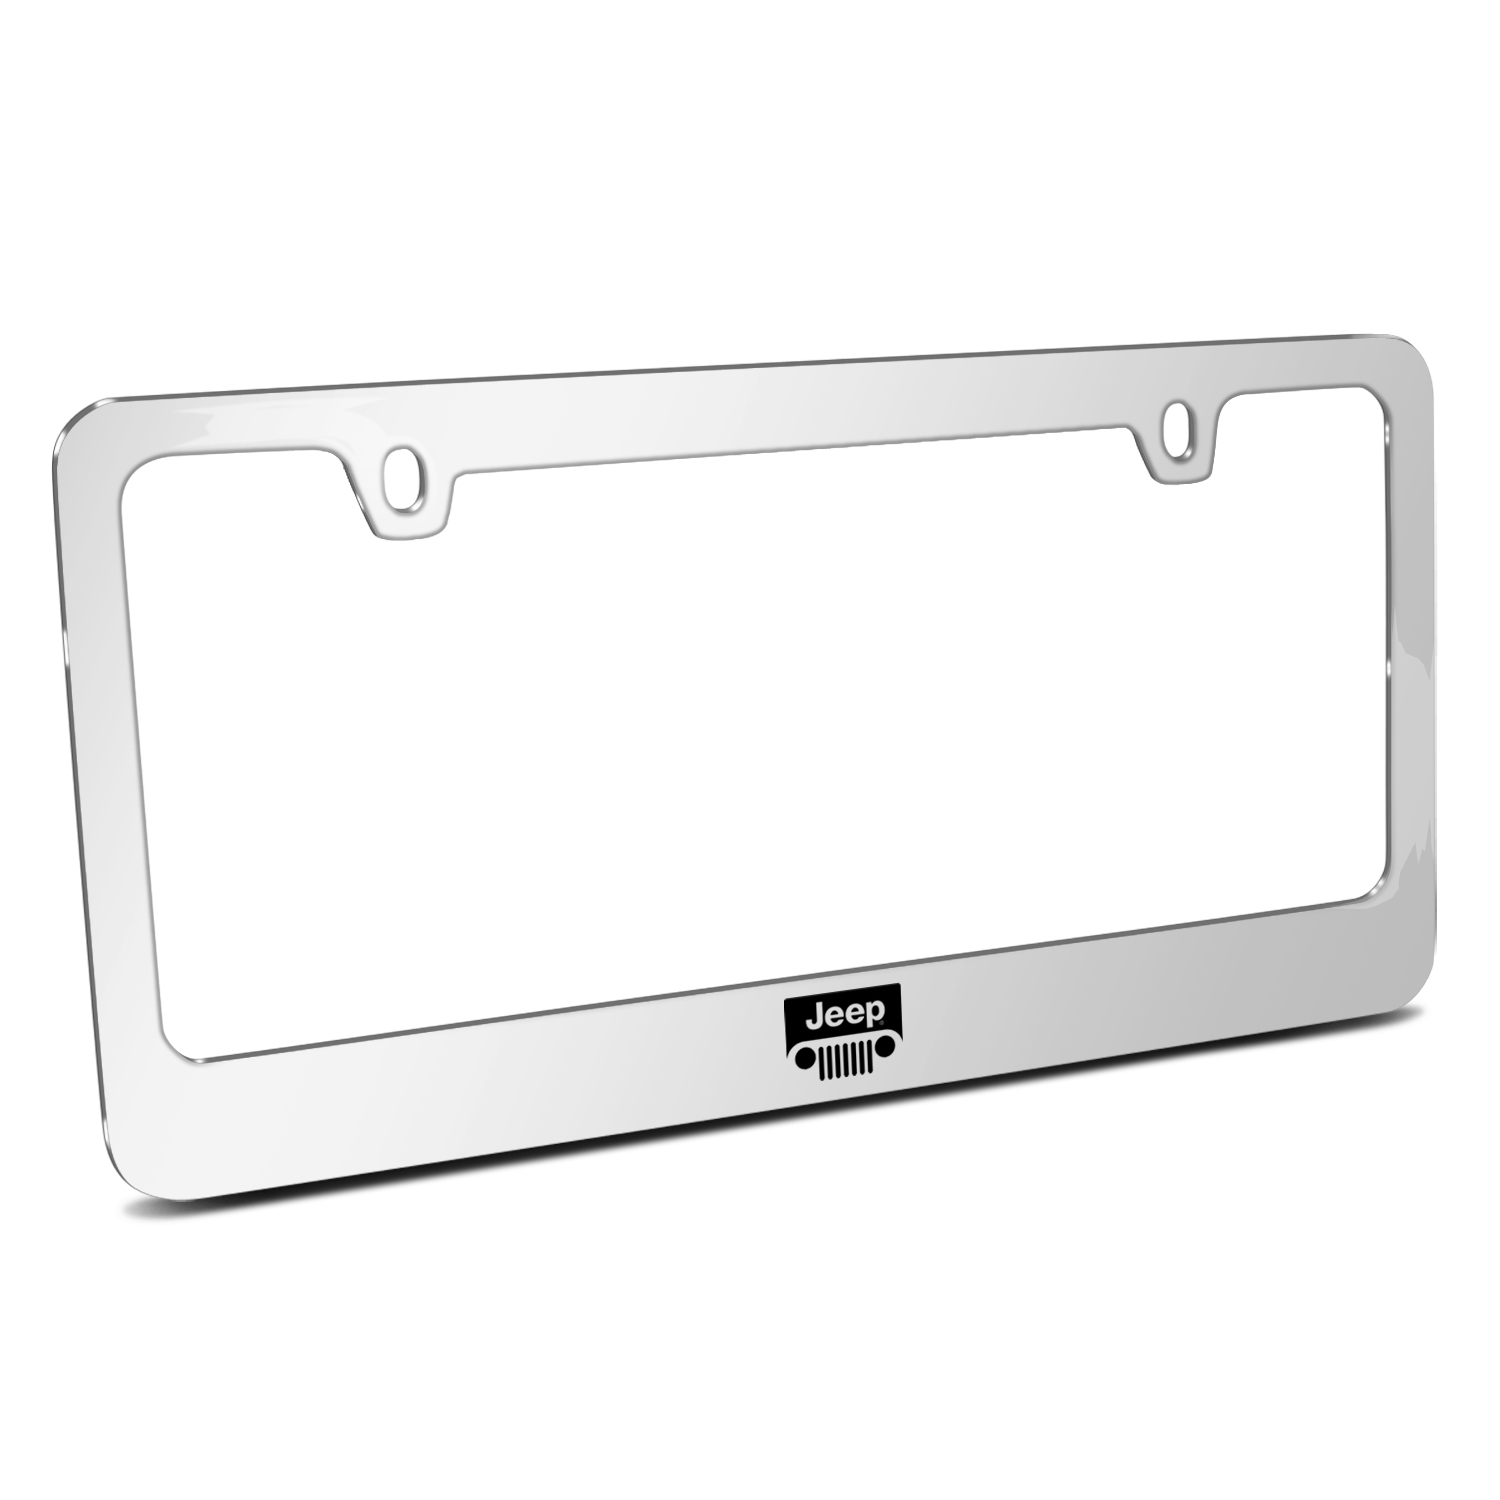 Jeep Grill Mirror Chrome Metal License Plate Frame